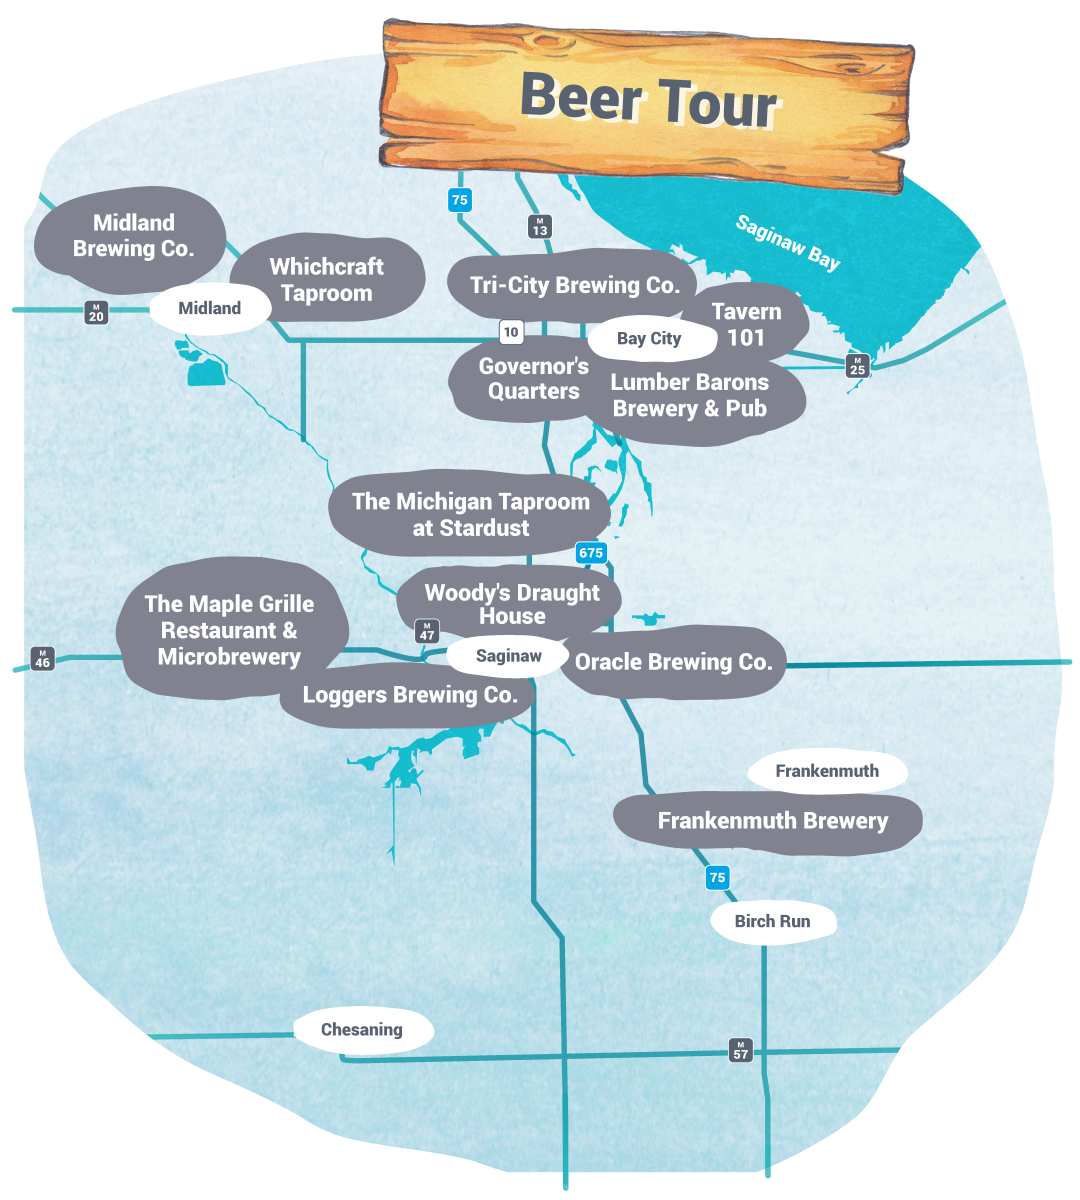 Self-Guided Tours - Beer Tour Map